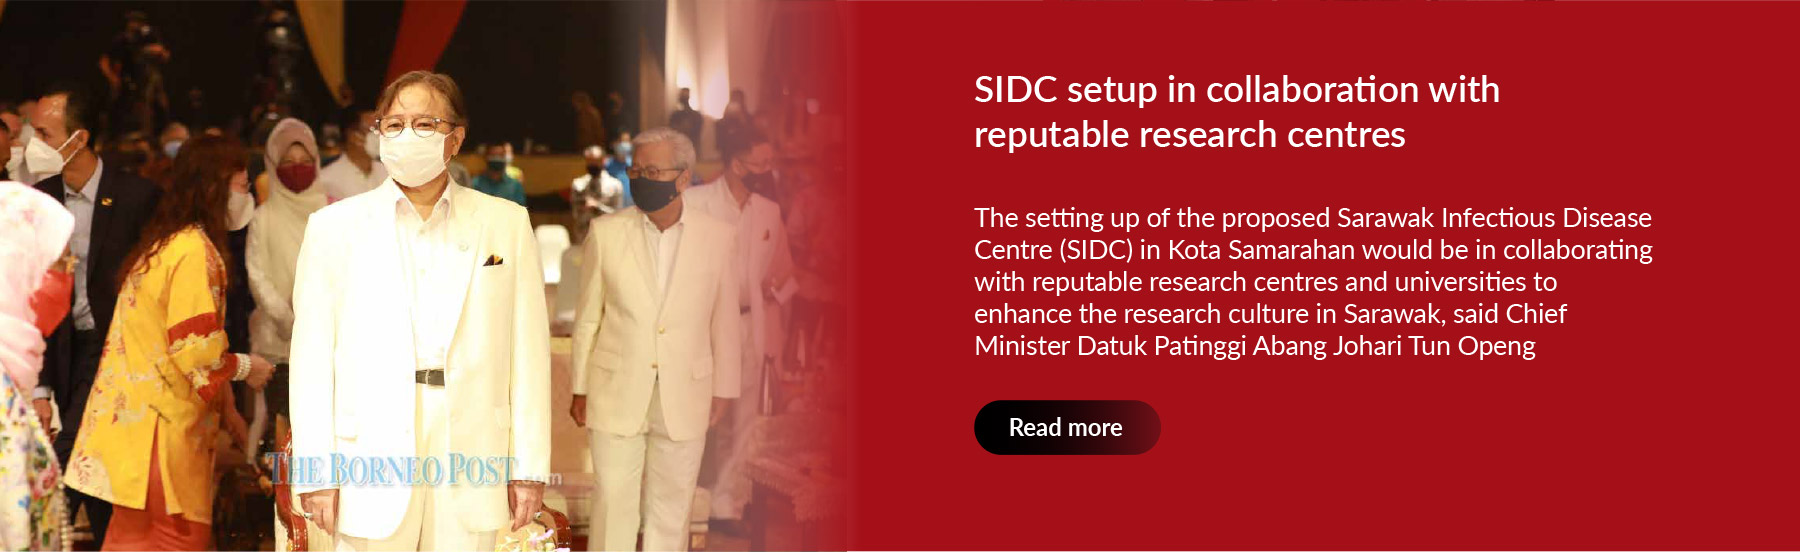 SIDC setup in collaboration with reputable research centres